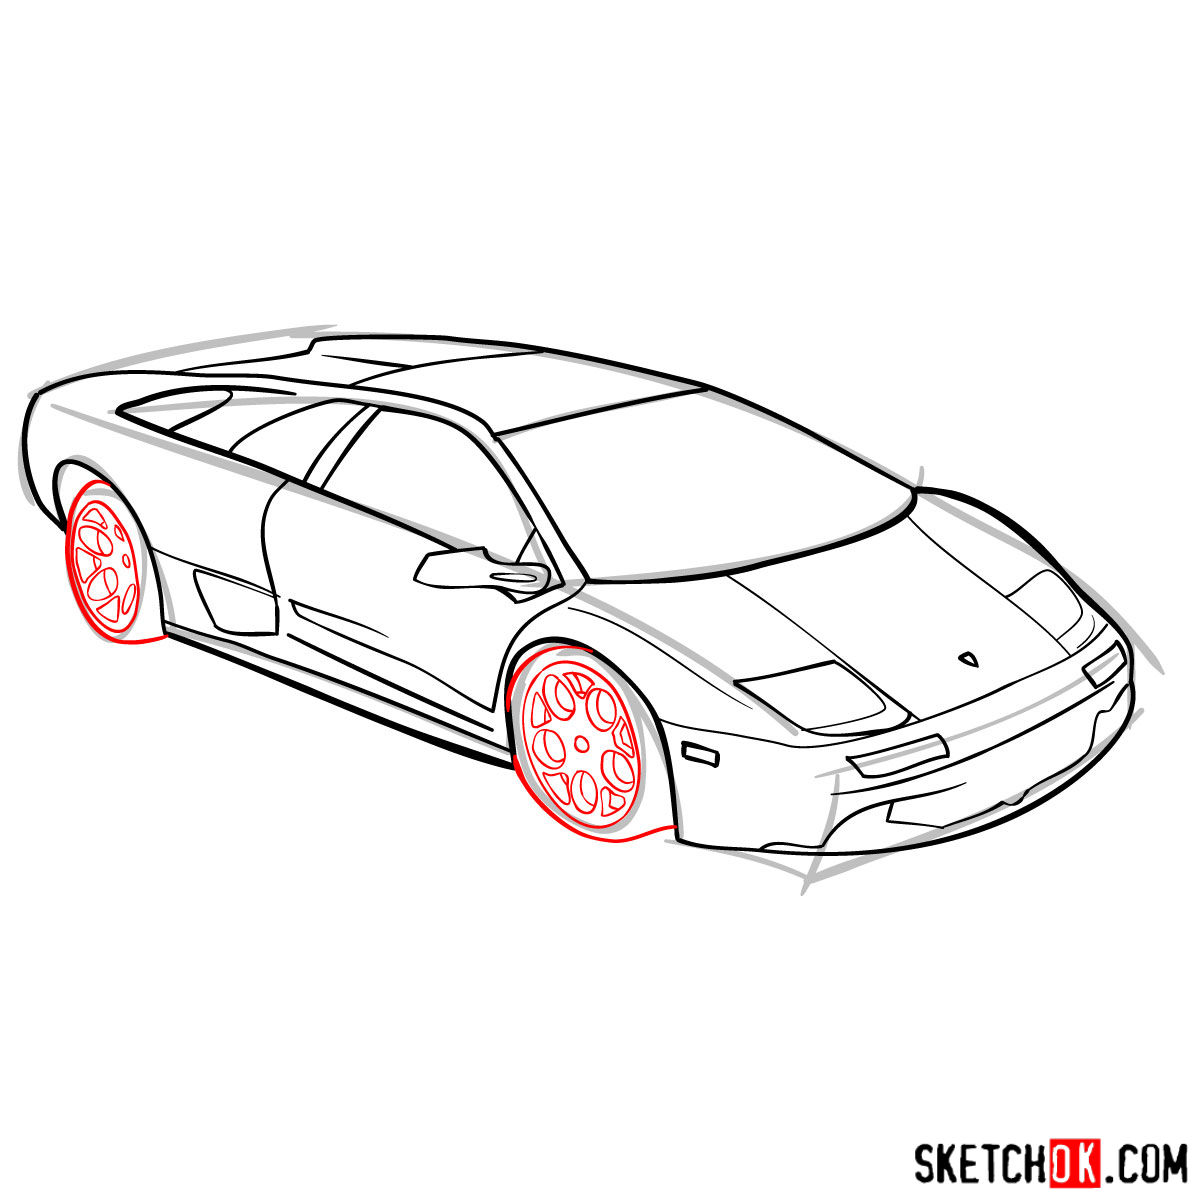 How to draw Lamborghini Diablo - step 09